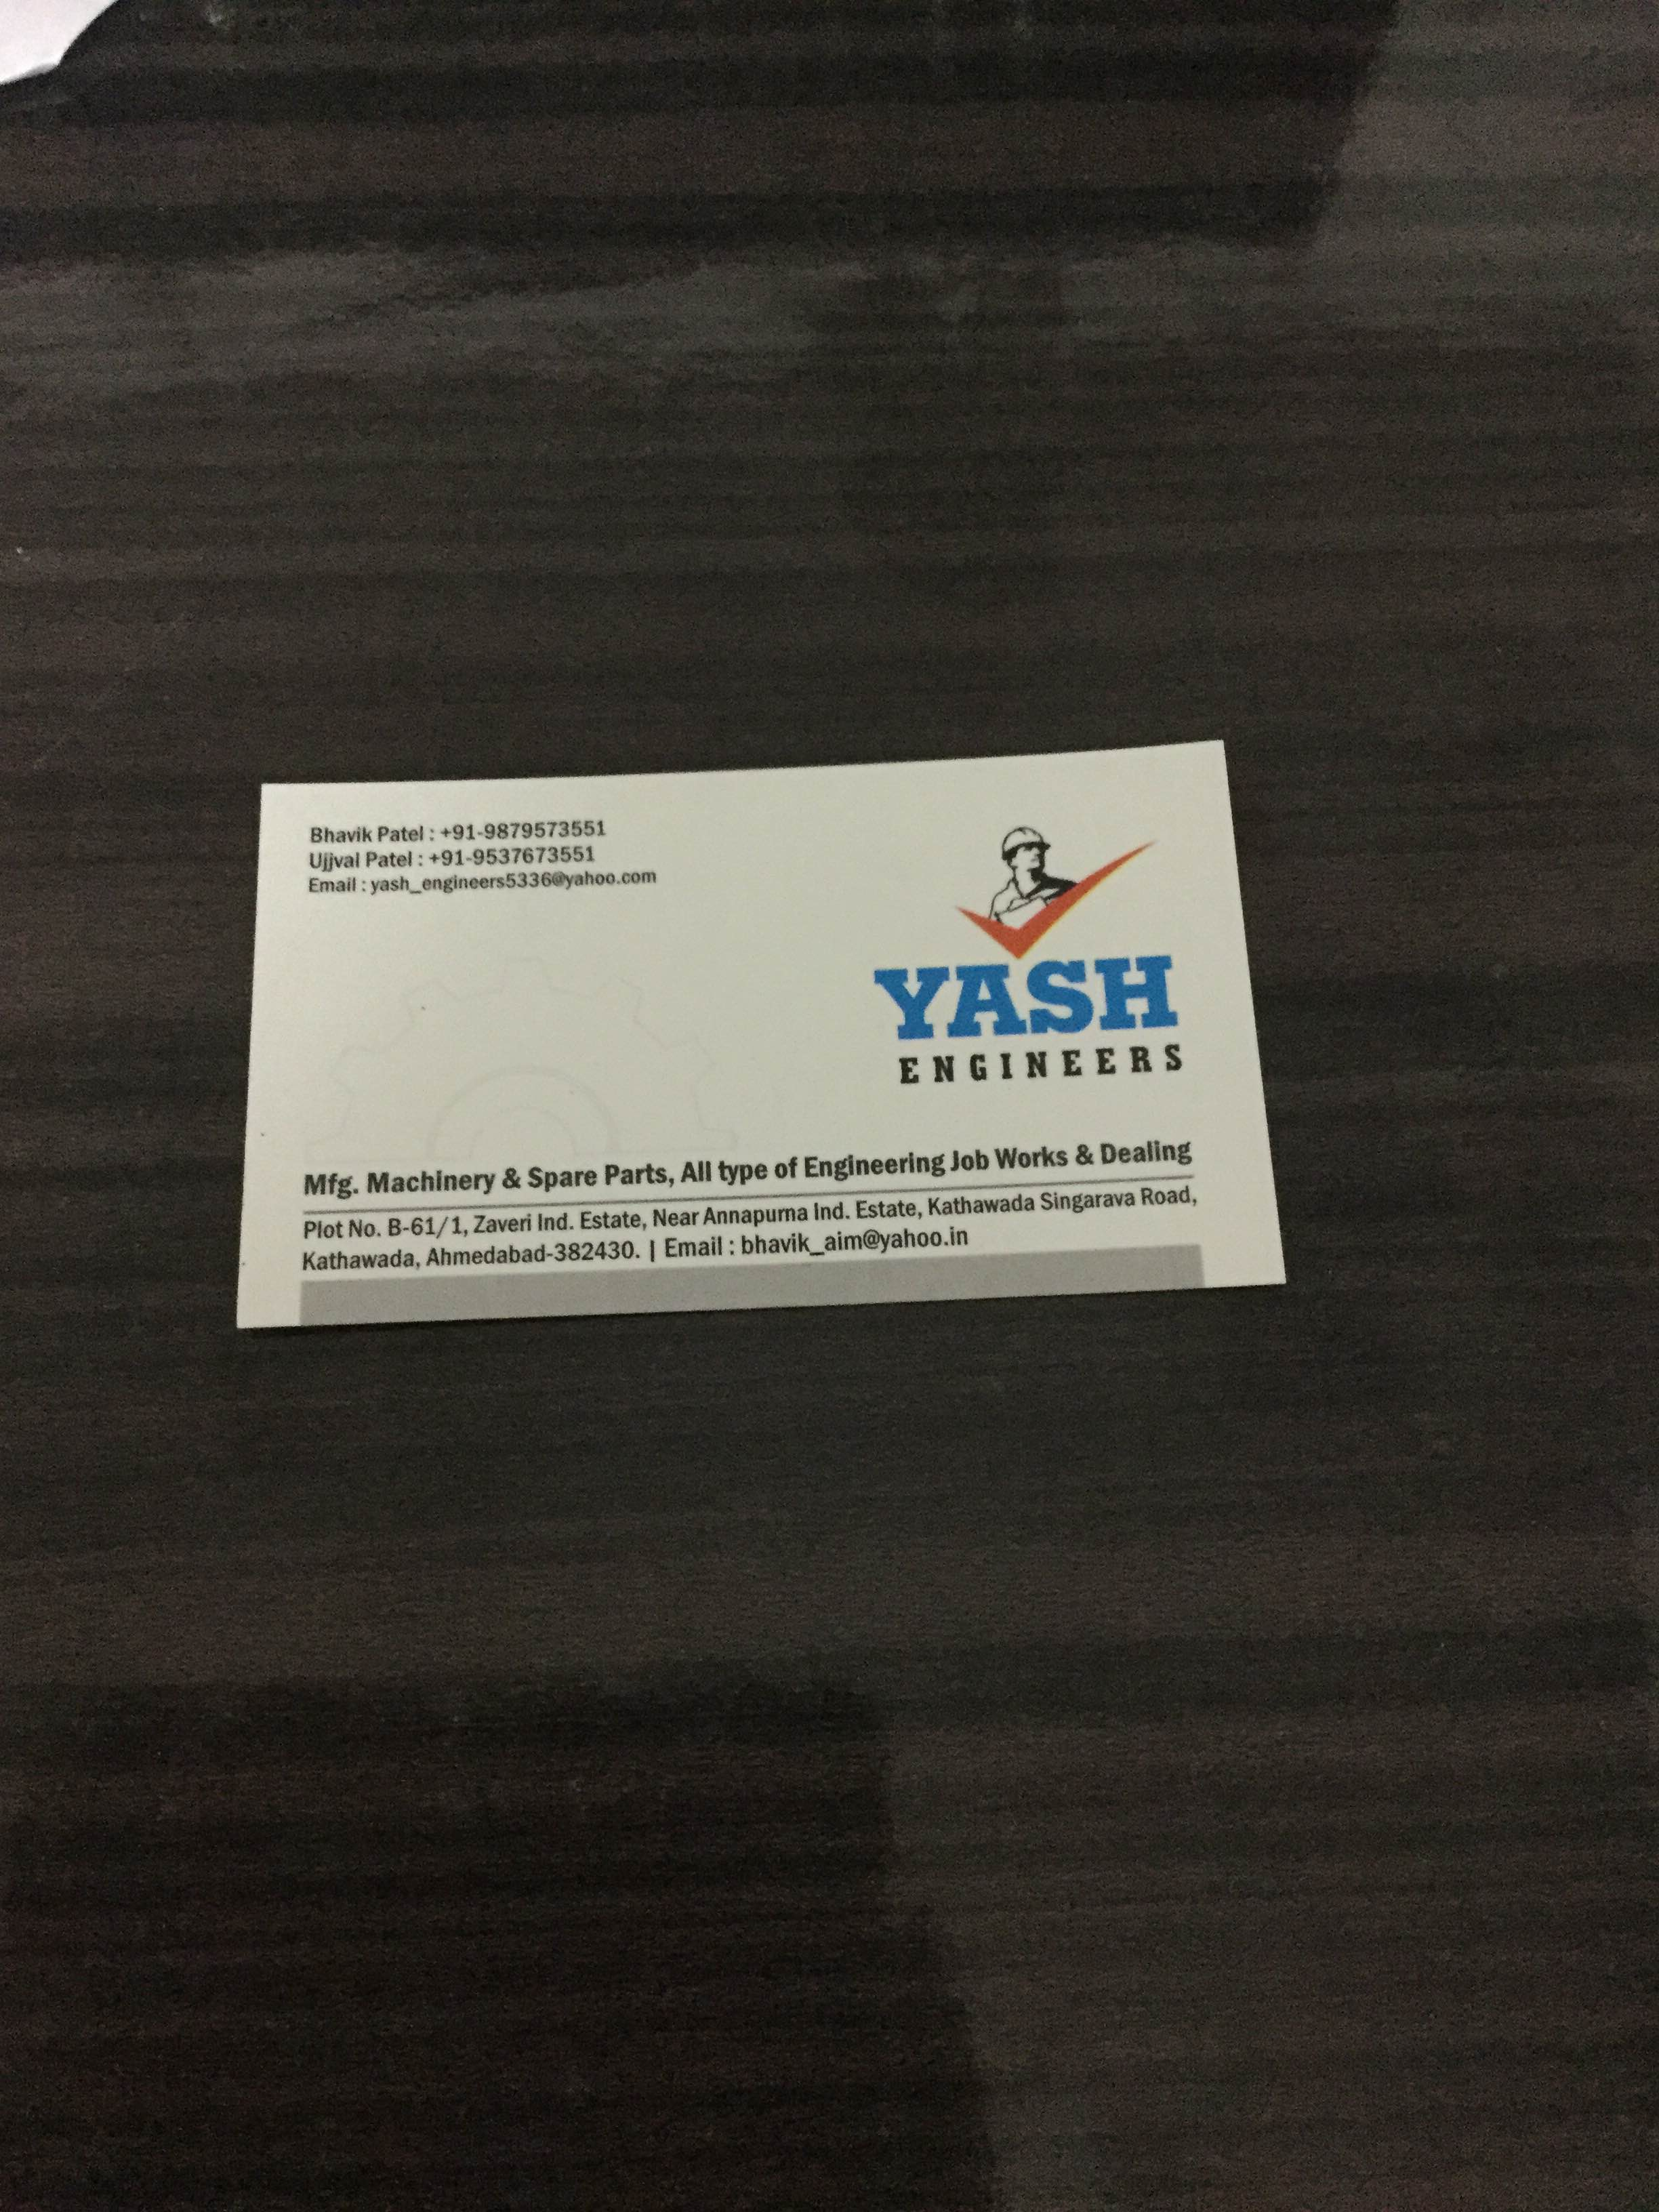 Yash Engineer is Manufacturer and Supplier of Steel Plant Machinery